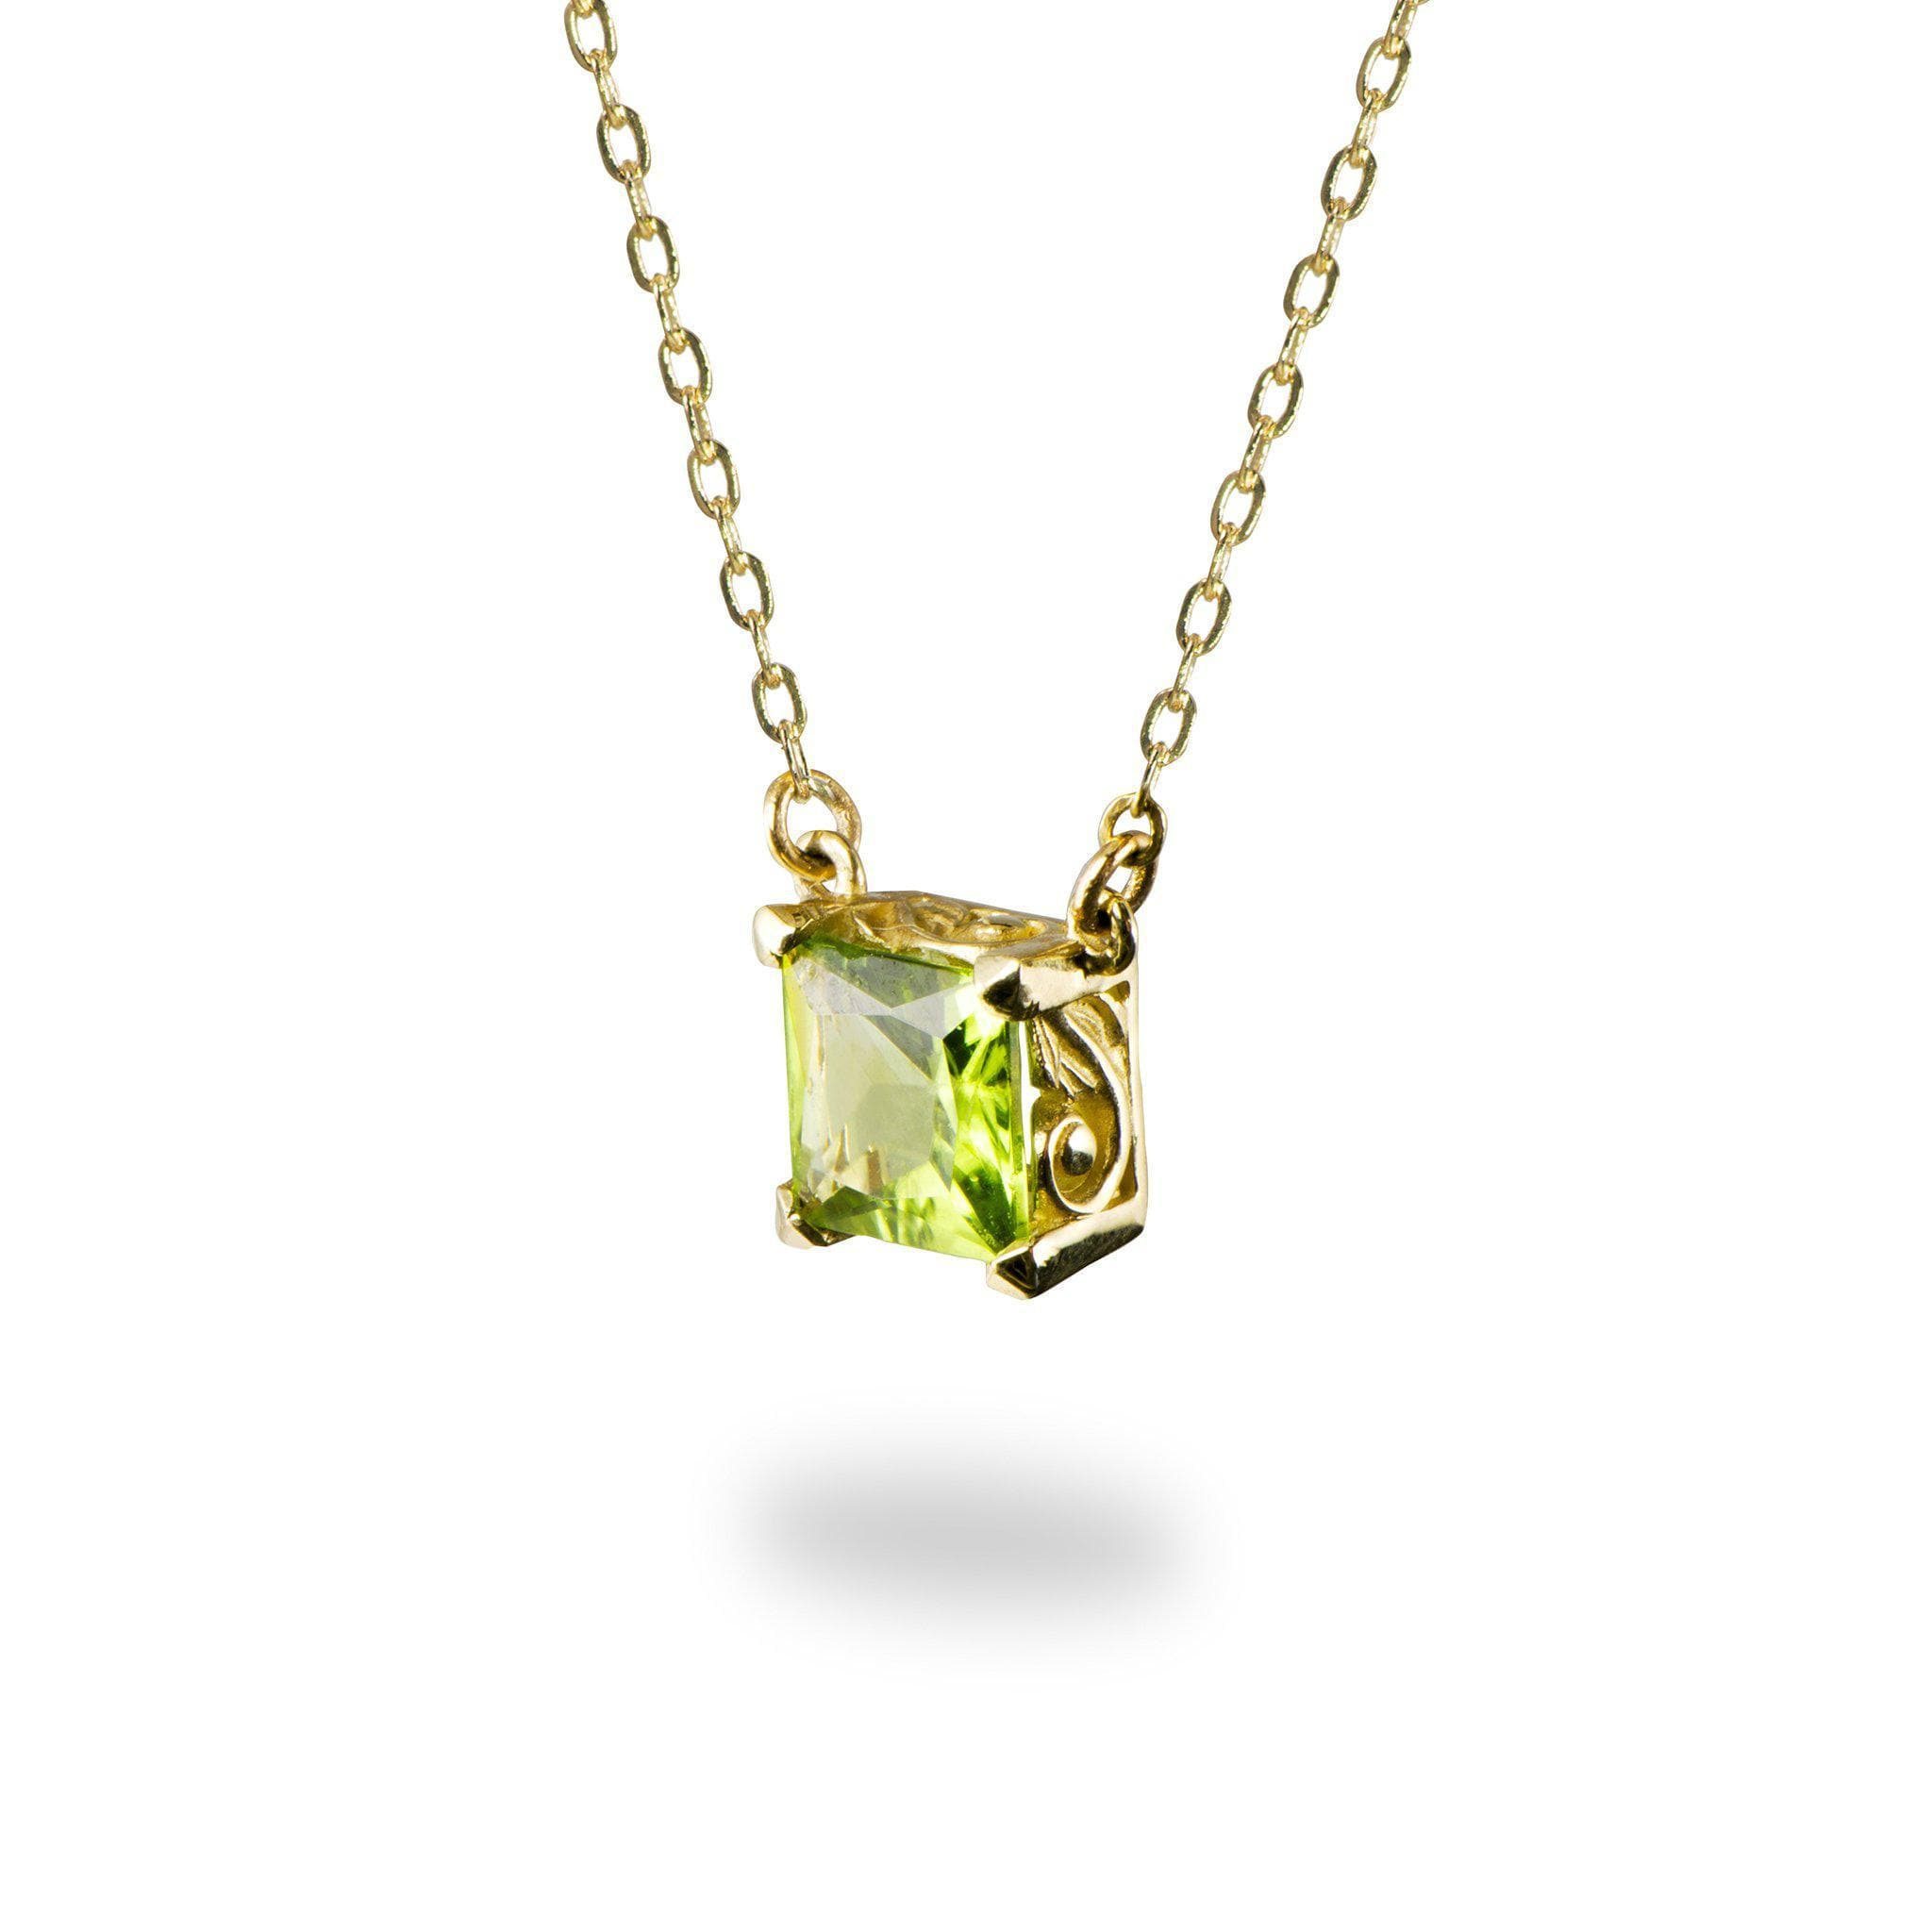 necklace jewelry item gold pendant white peridot contemporary